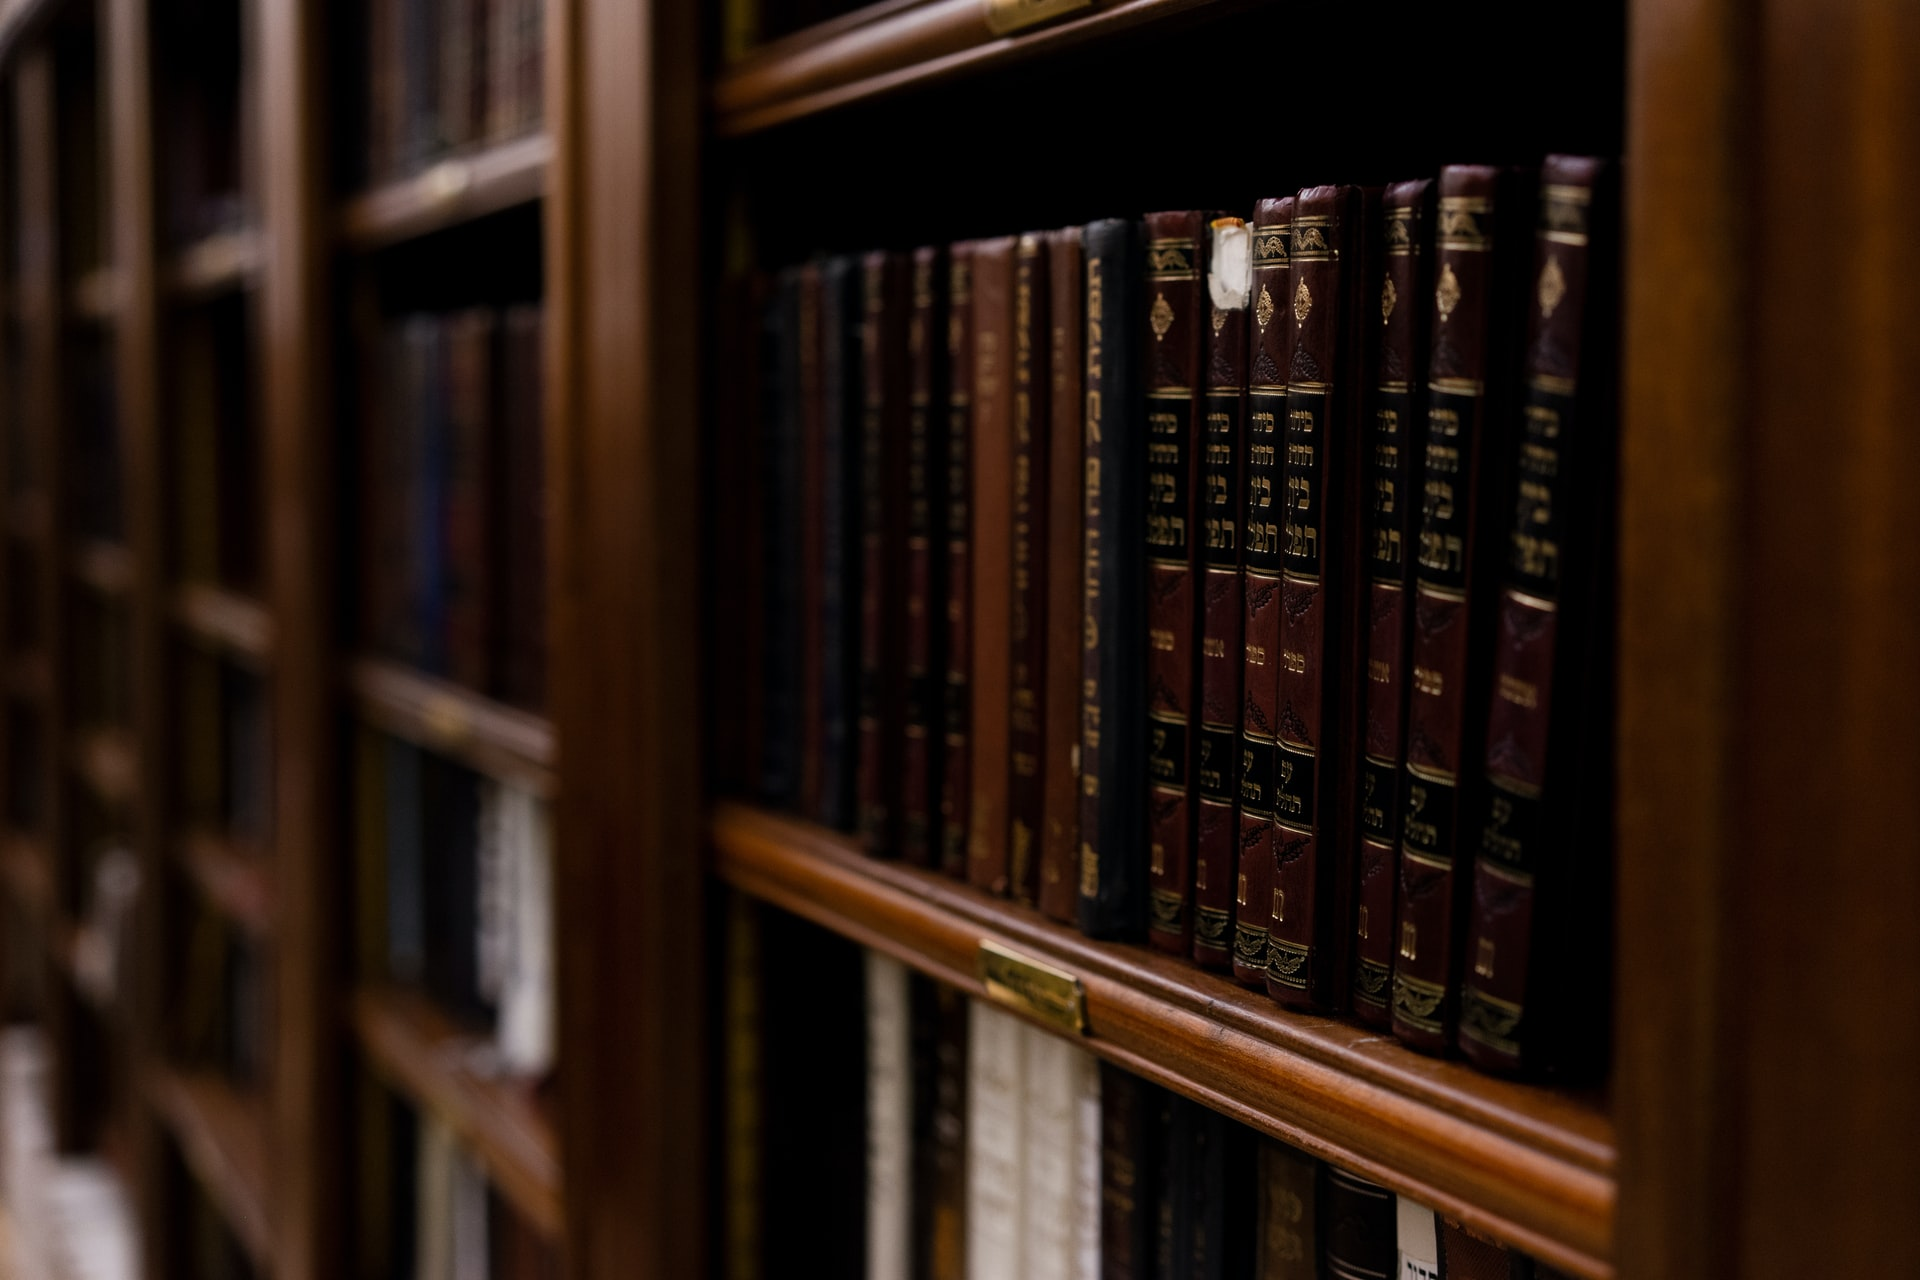 Close up photo of bookshelf lined with law books